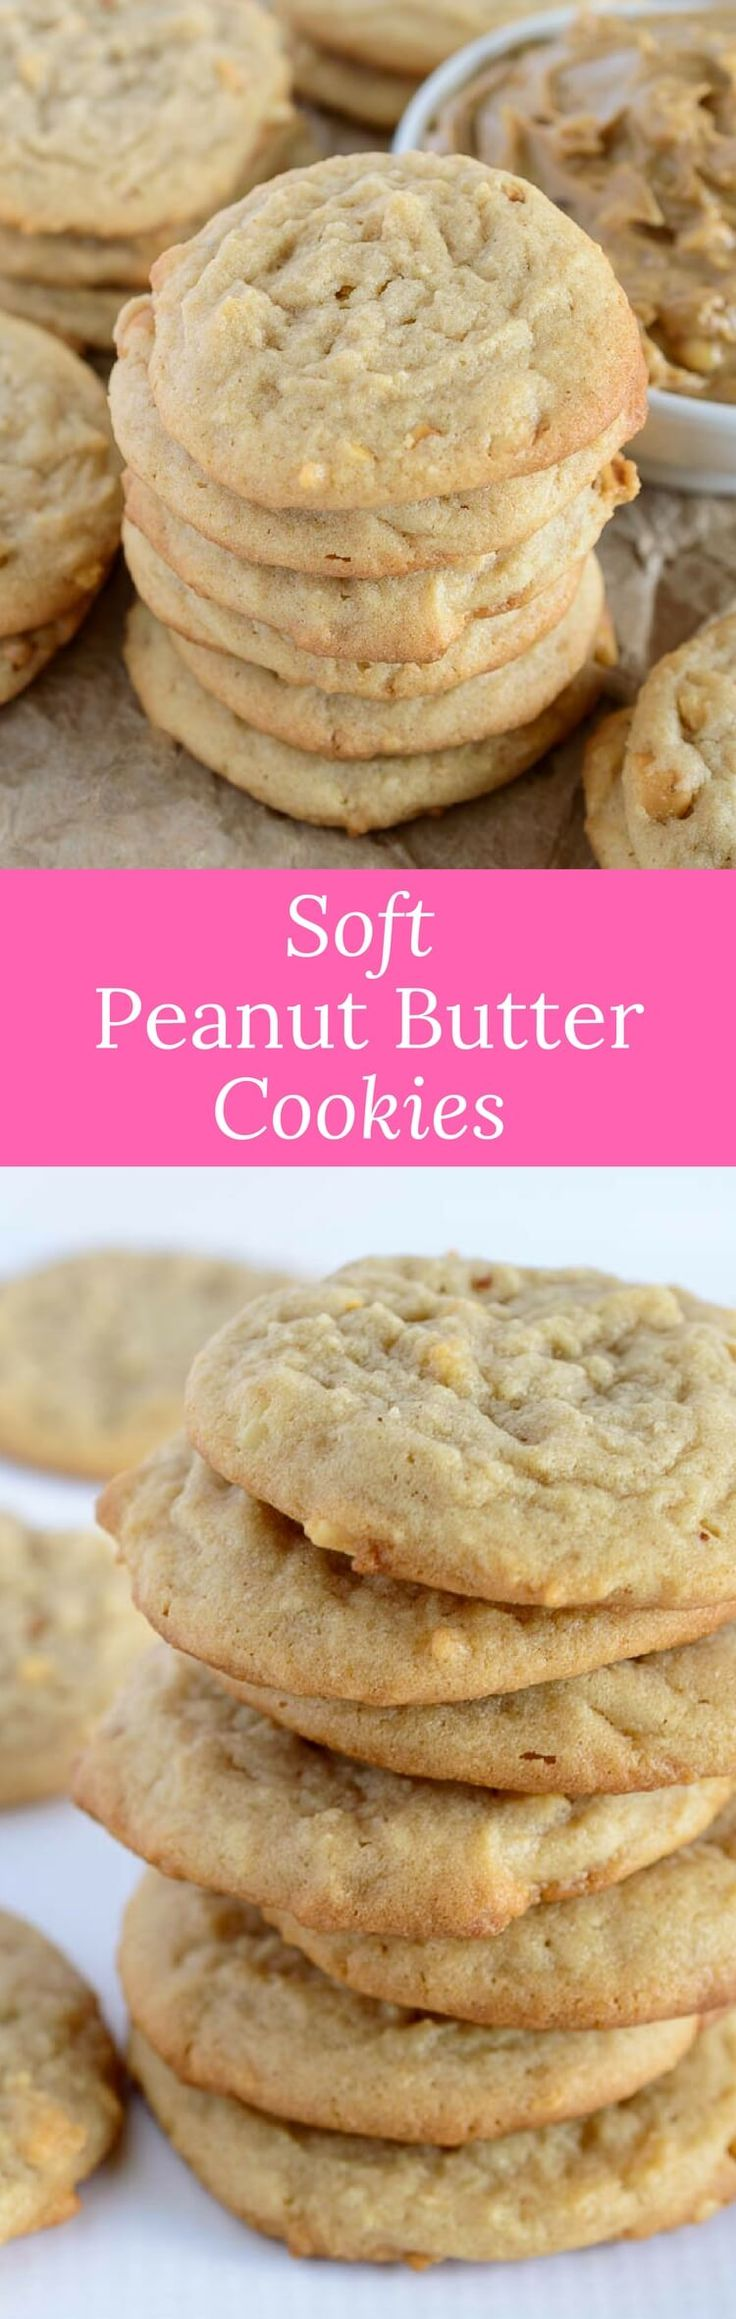 These soft peanut butter cookies are all the rage. They're easy to make and even easier to eat! They will be your absolute favorite. via @introvertbaker